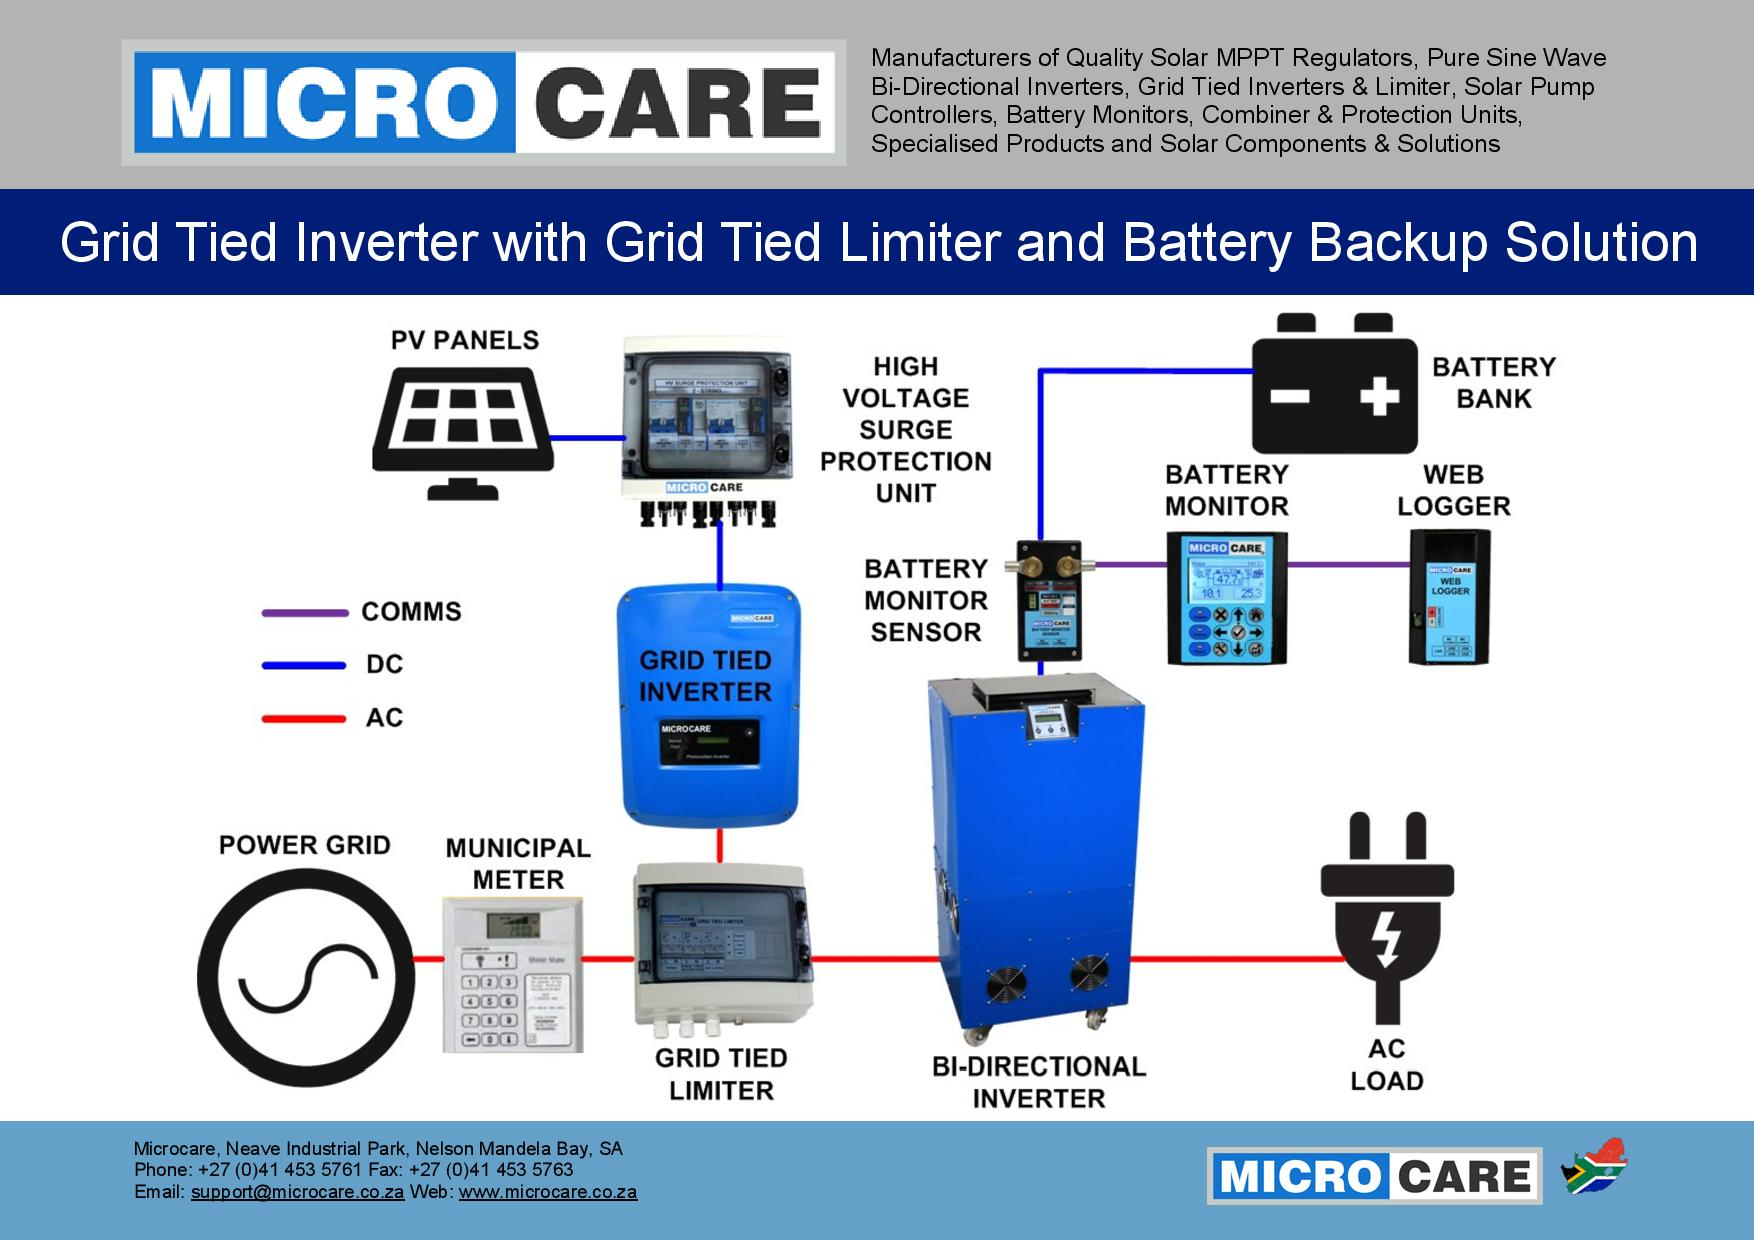 Bennett Wiring Diagram Control Rocker Switch Microcare Grid Tied Inverter With Limiter And Bolt Eic Carling Switches